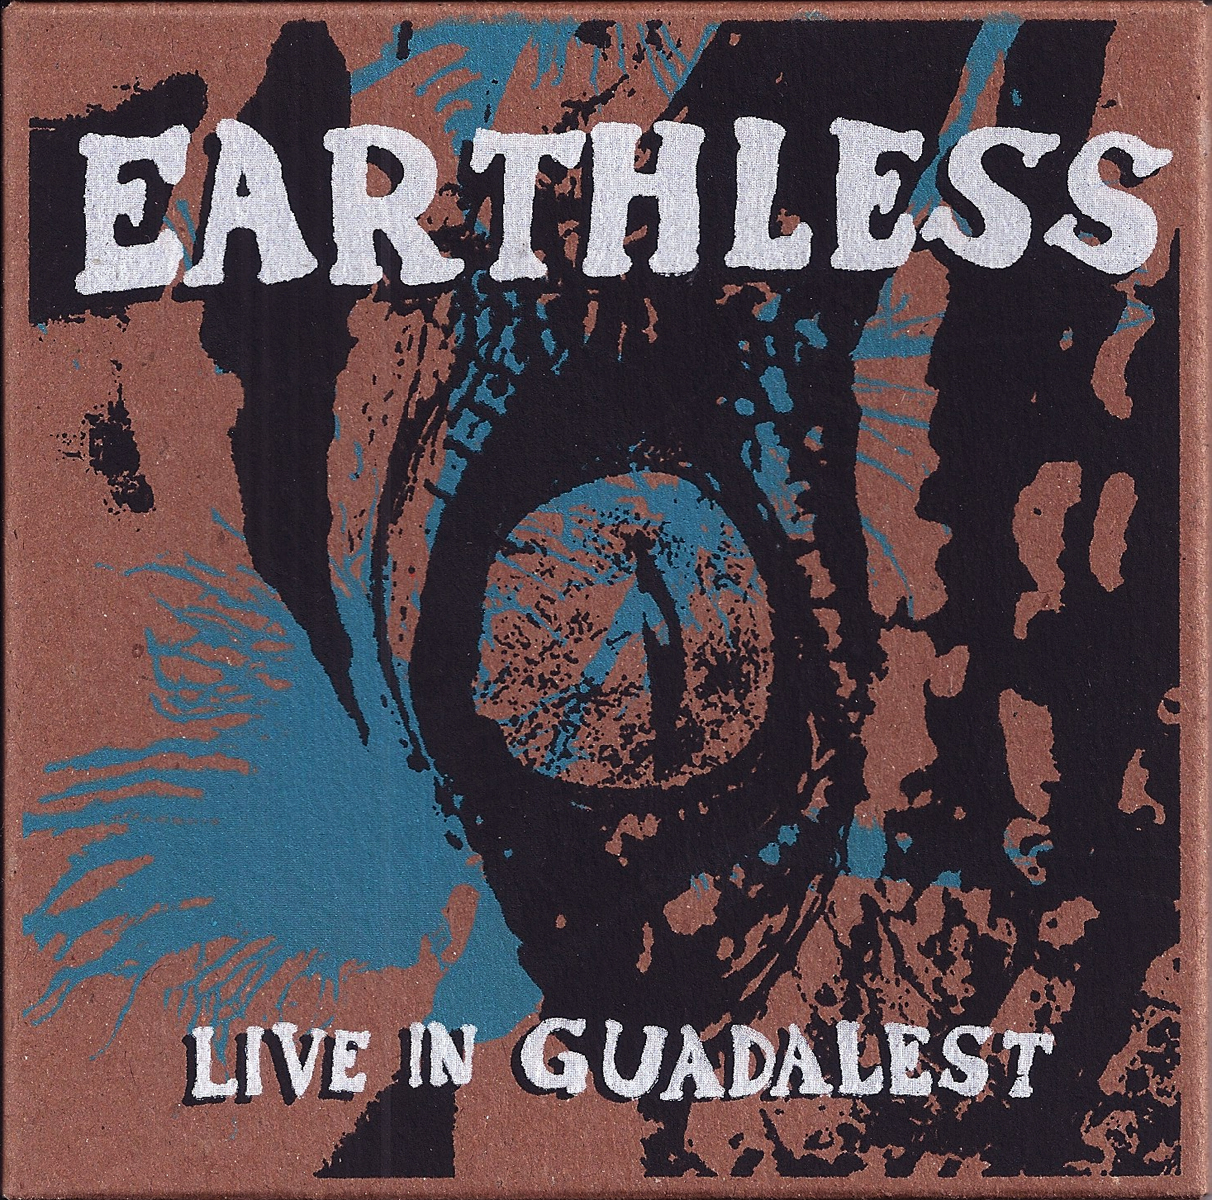 EARTHLESS Sc-19-earthless-guadalest-front